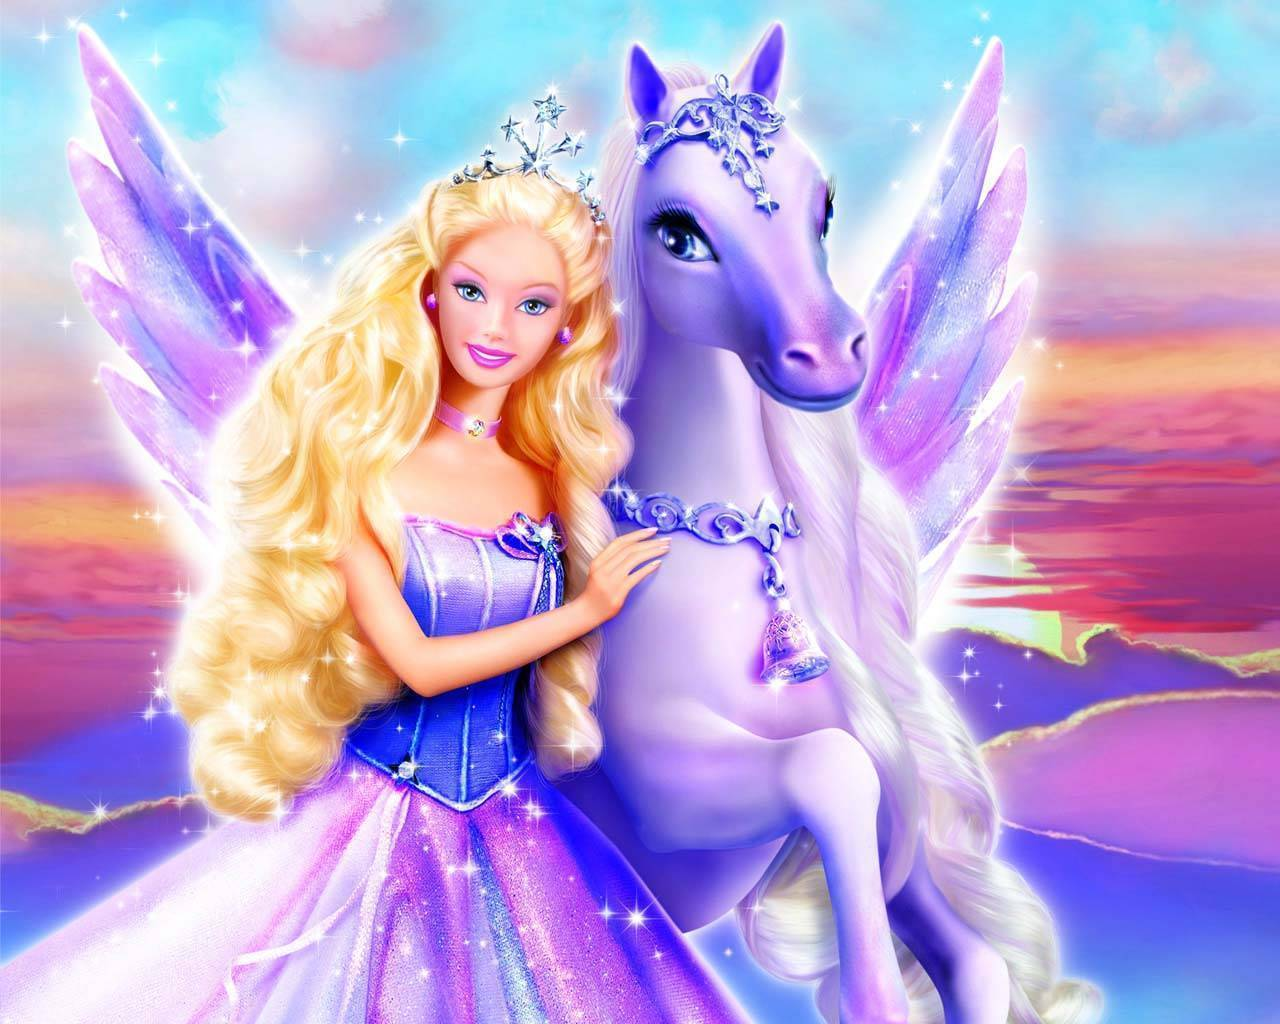 Barbie movie stars images annika and brietta hd wallpaper and barbie movie stars images annika and brietta hd wallpaper and background photos voltagebd Image collections